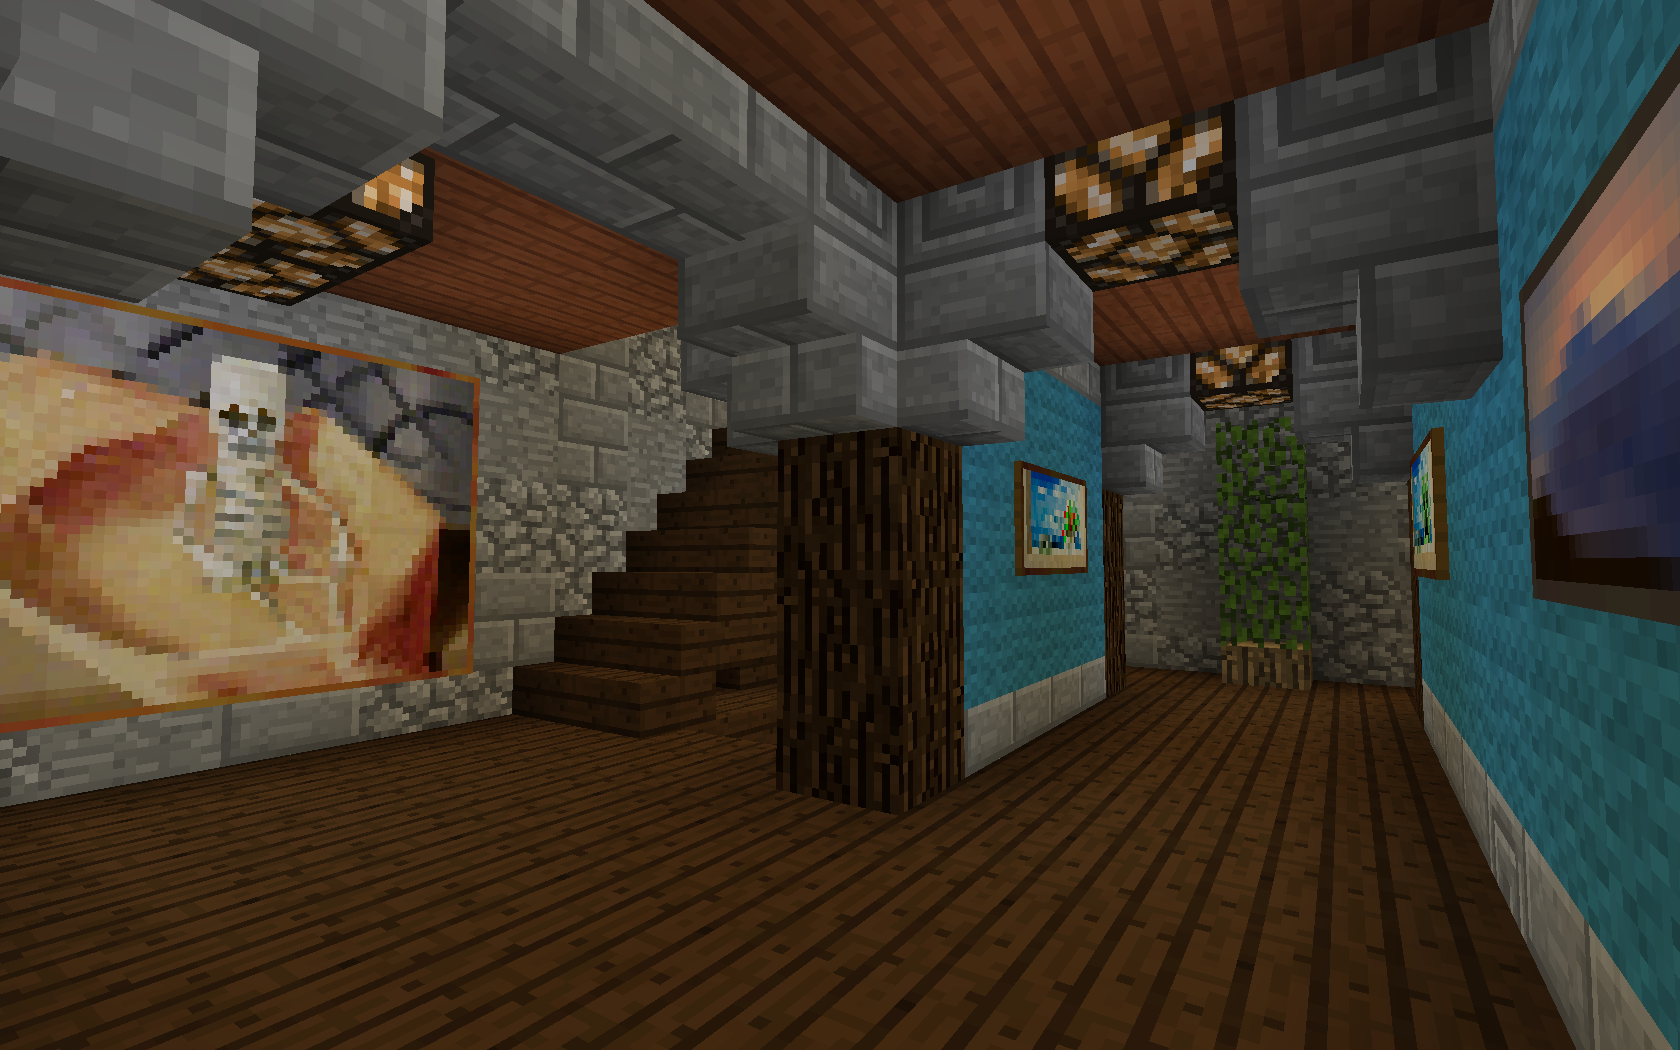 Interior Room of Tower House by Polygon_Wizard